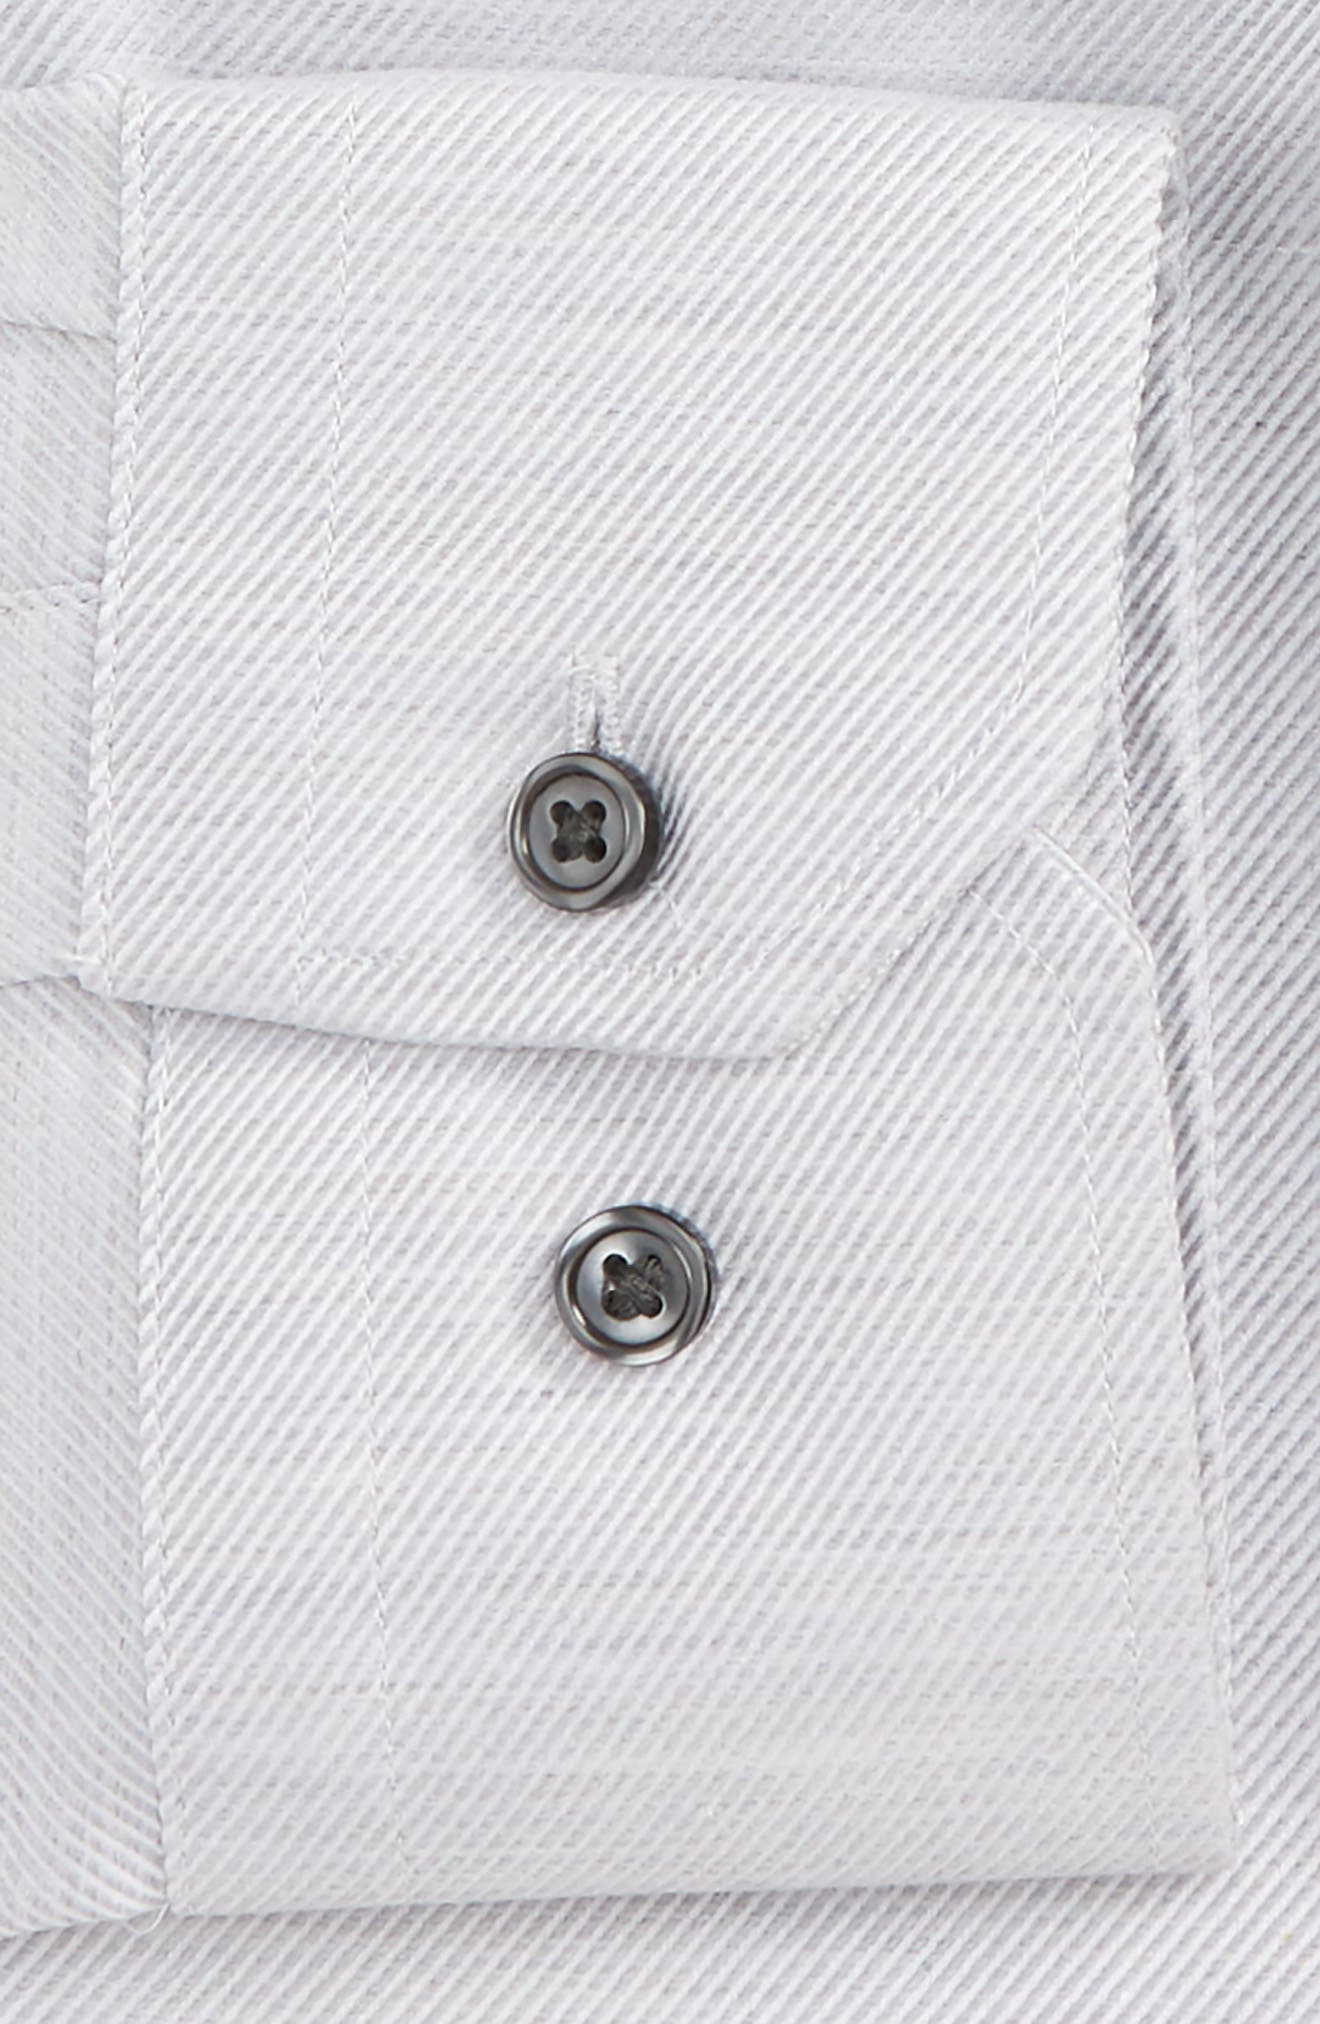 Trim Fit Twill Dress Shirt,                             Alternate thumbnail 2, color,                             020